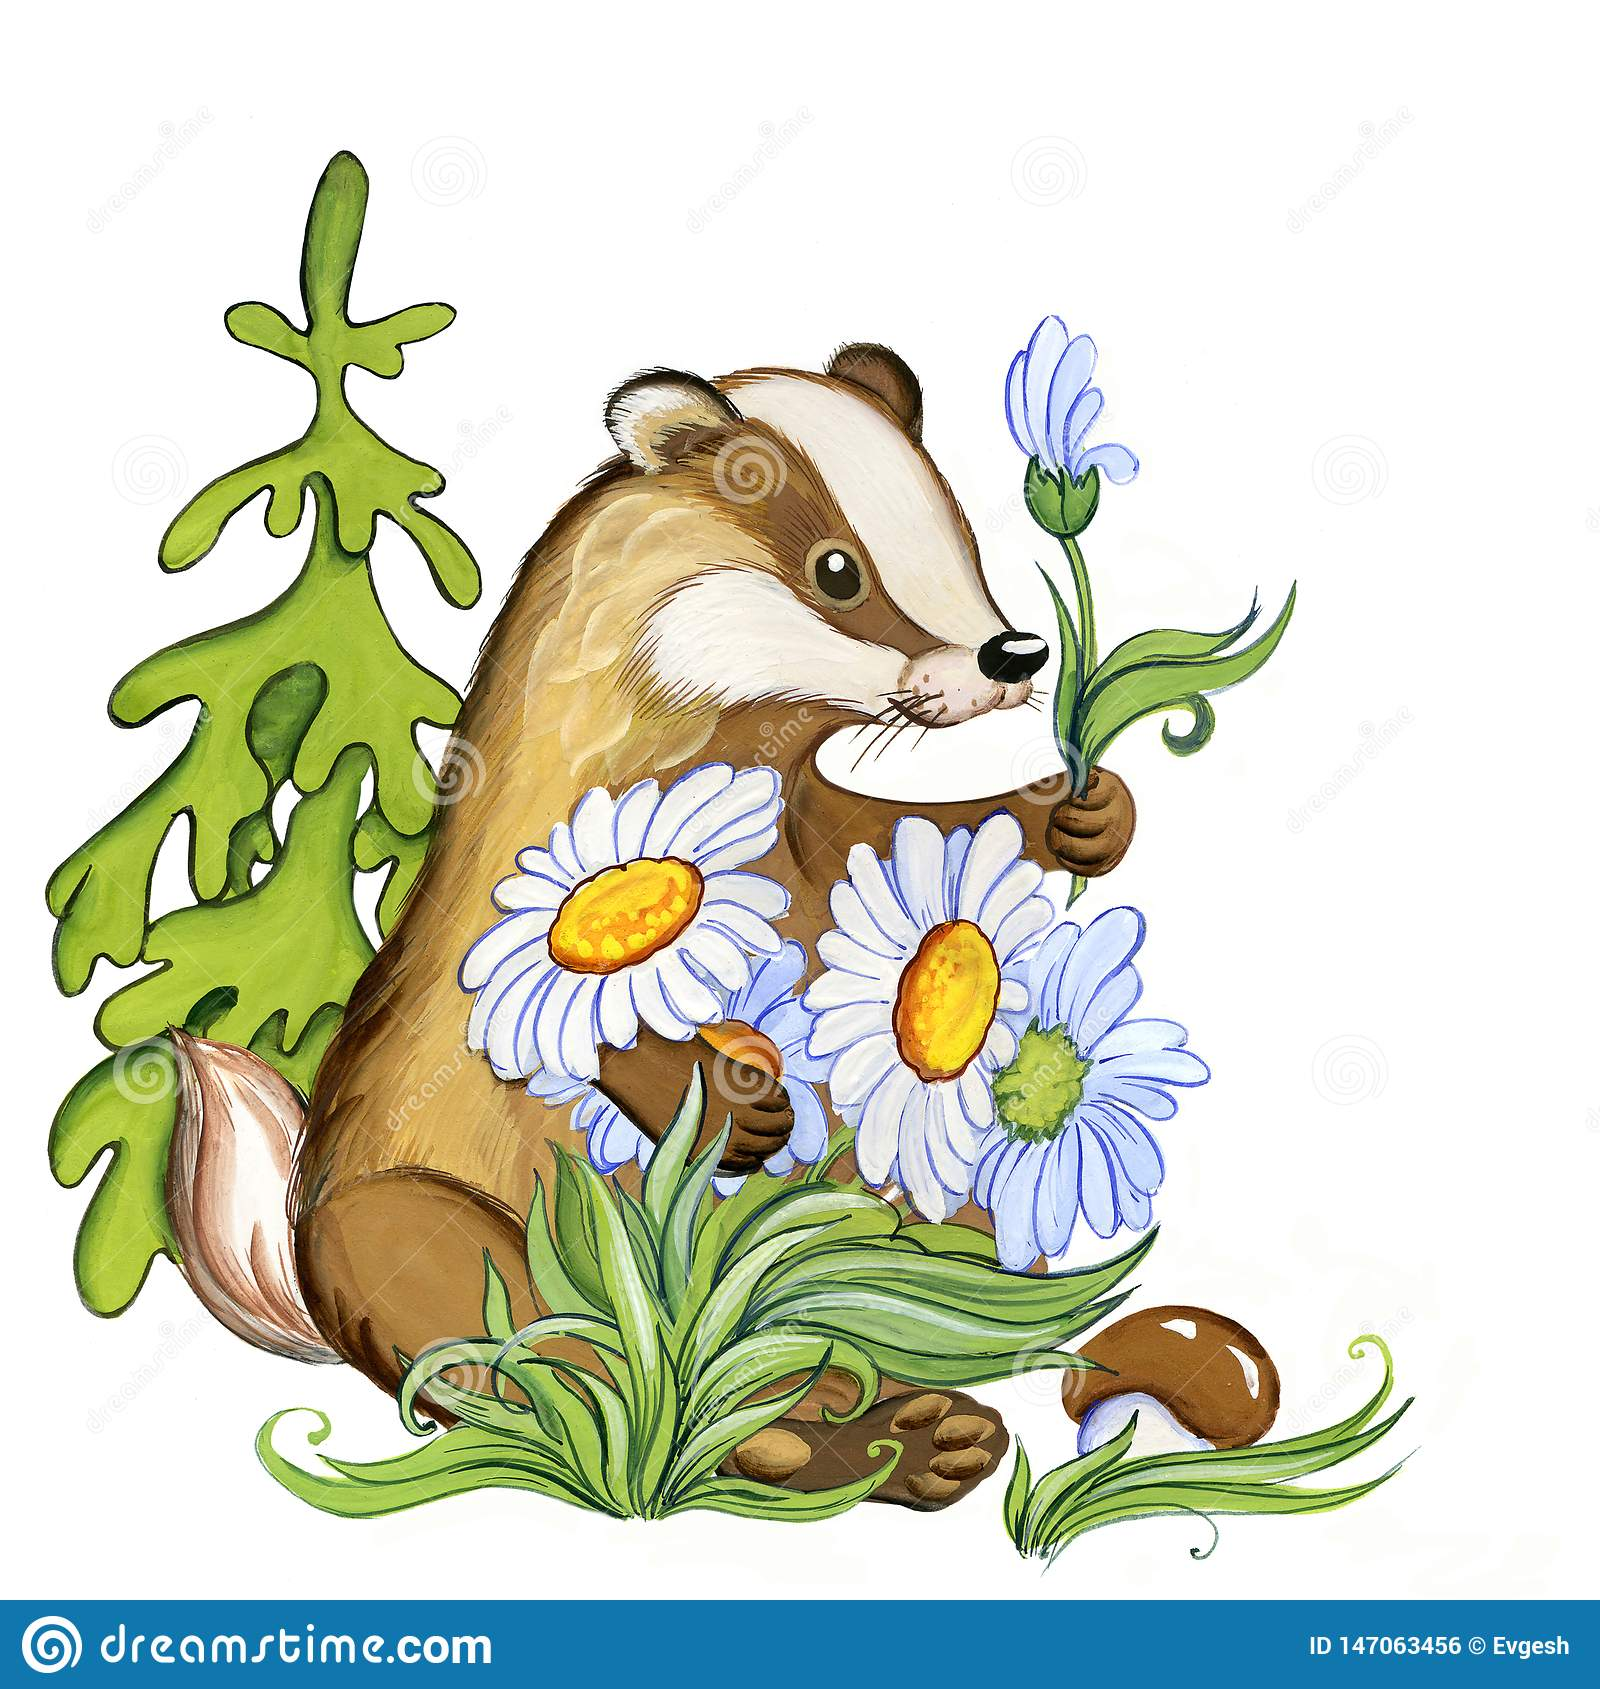 Badger gives white forest flowers, watercolor illustration